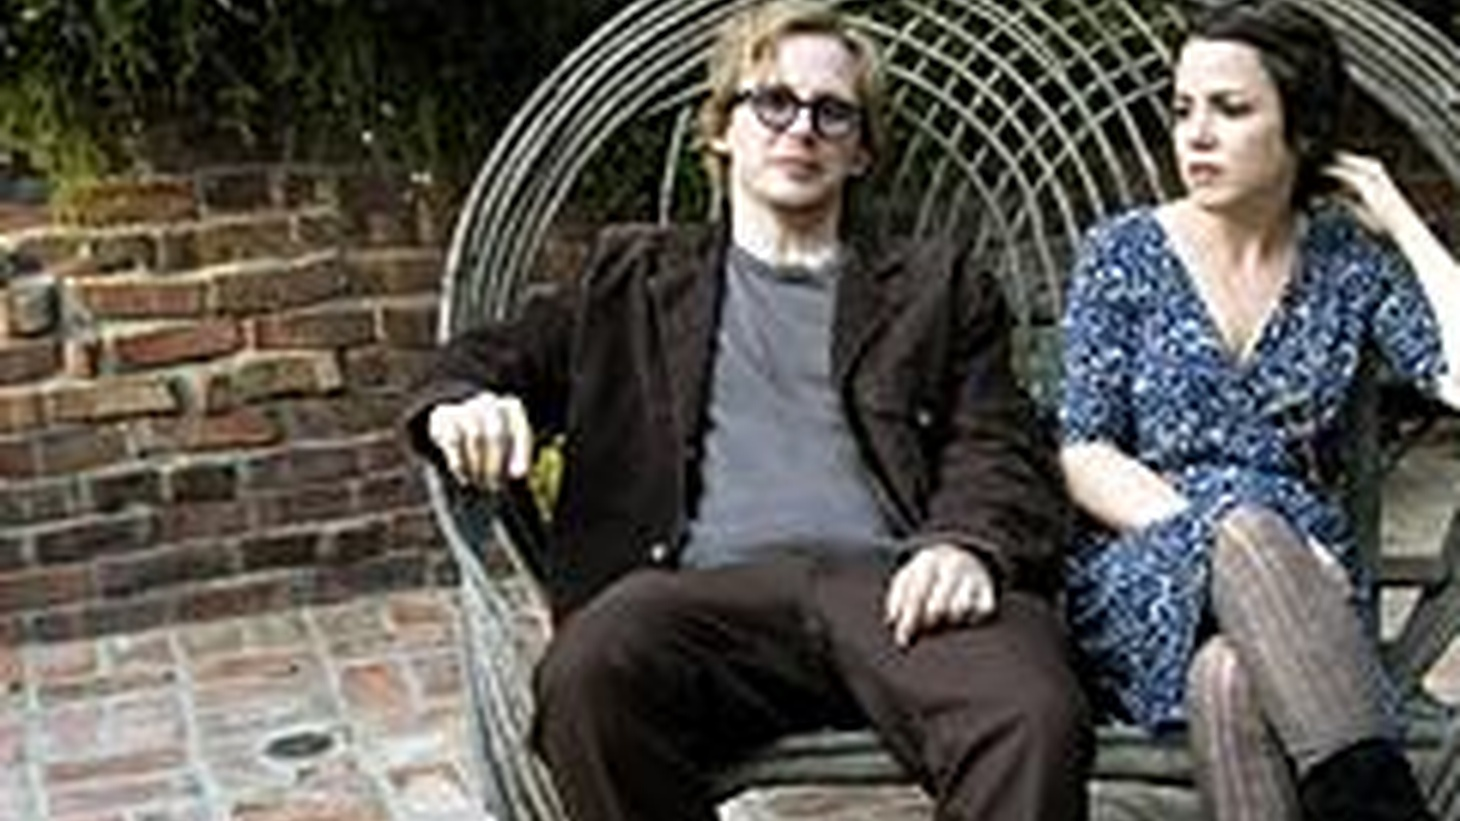 ...from Ten Years.   Petra Haden and Woody Jackson call Los Angeles home. Both are session musicians with solo careers..